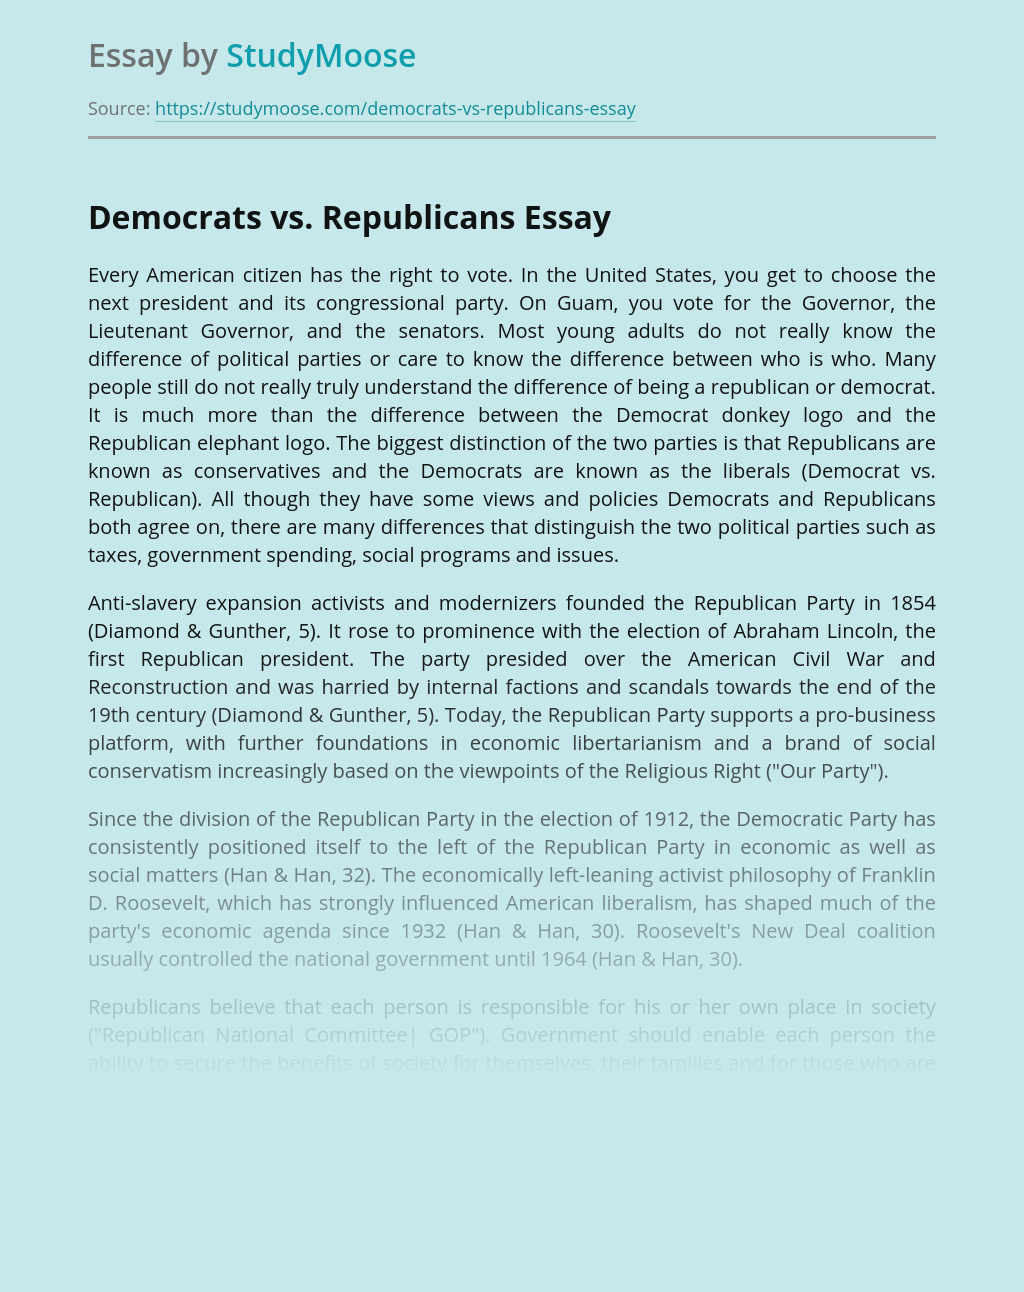 Democrats and Republicans on Taxes and Other Issues